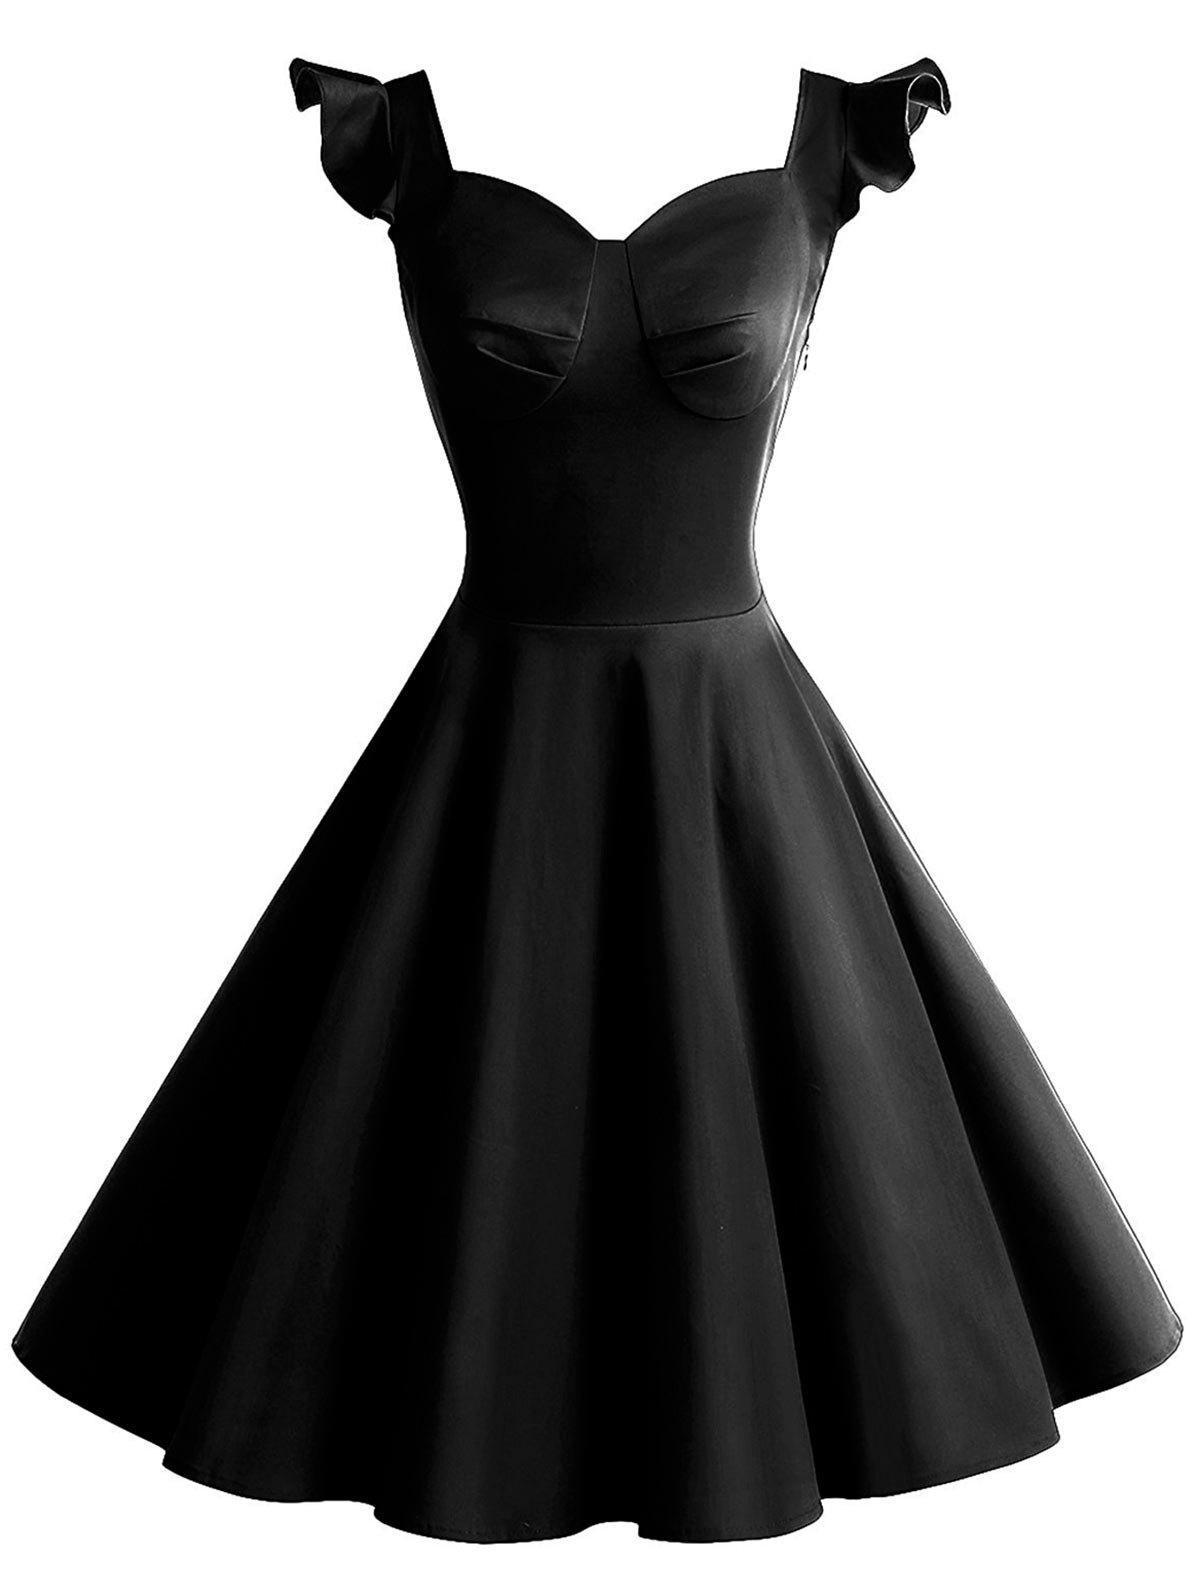 Best Vintage Cut Out Flounce Pinup Dress